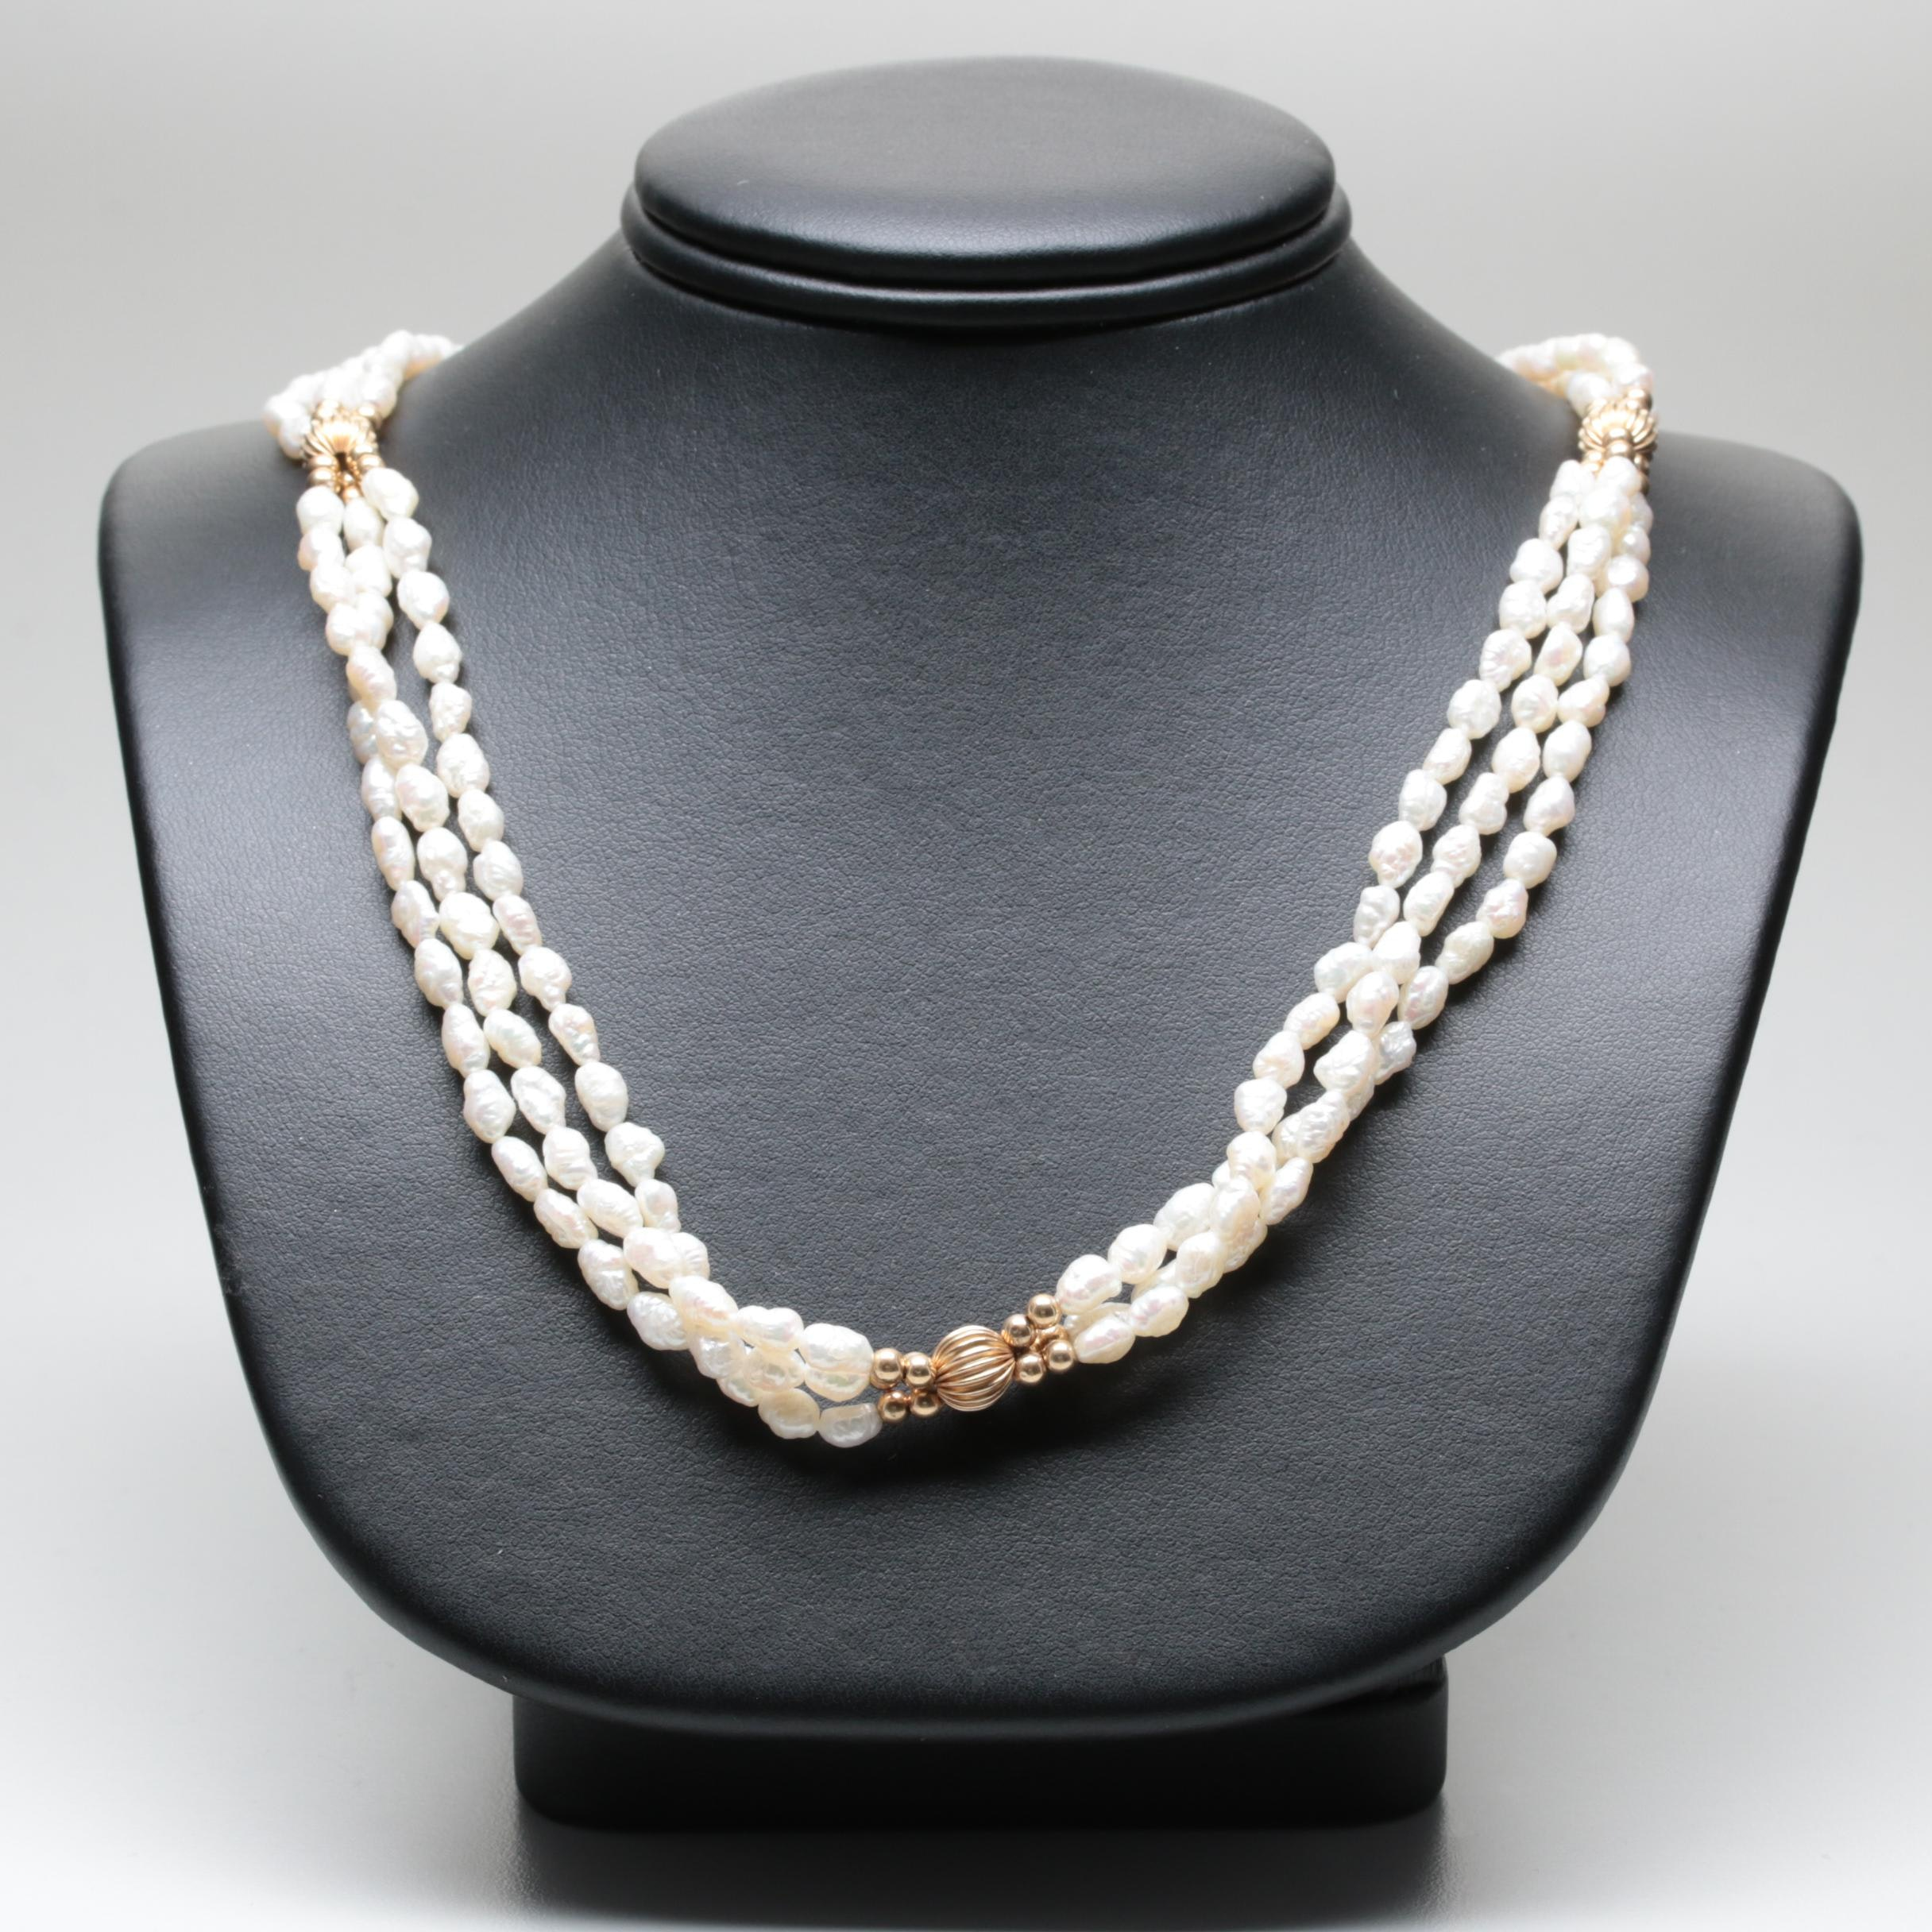 14K Yellow Gold Multistrand Cultured Pearl Necklace